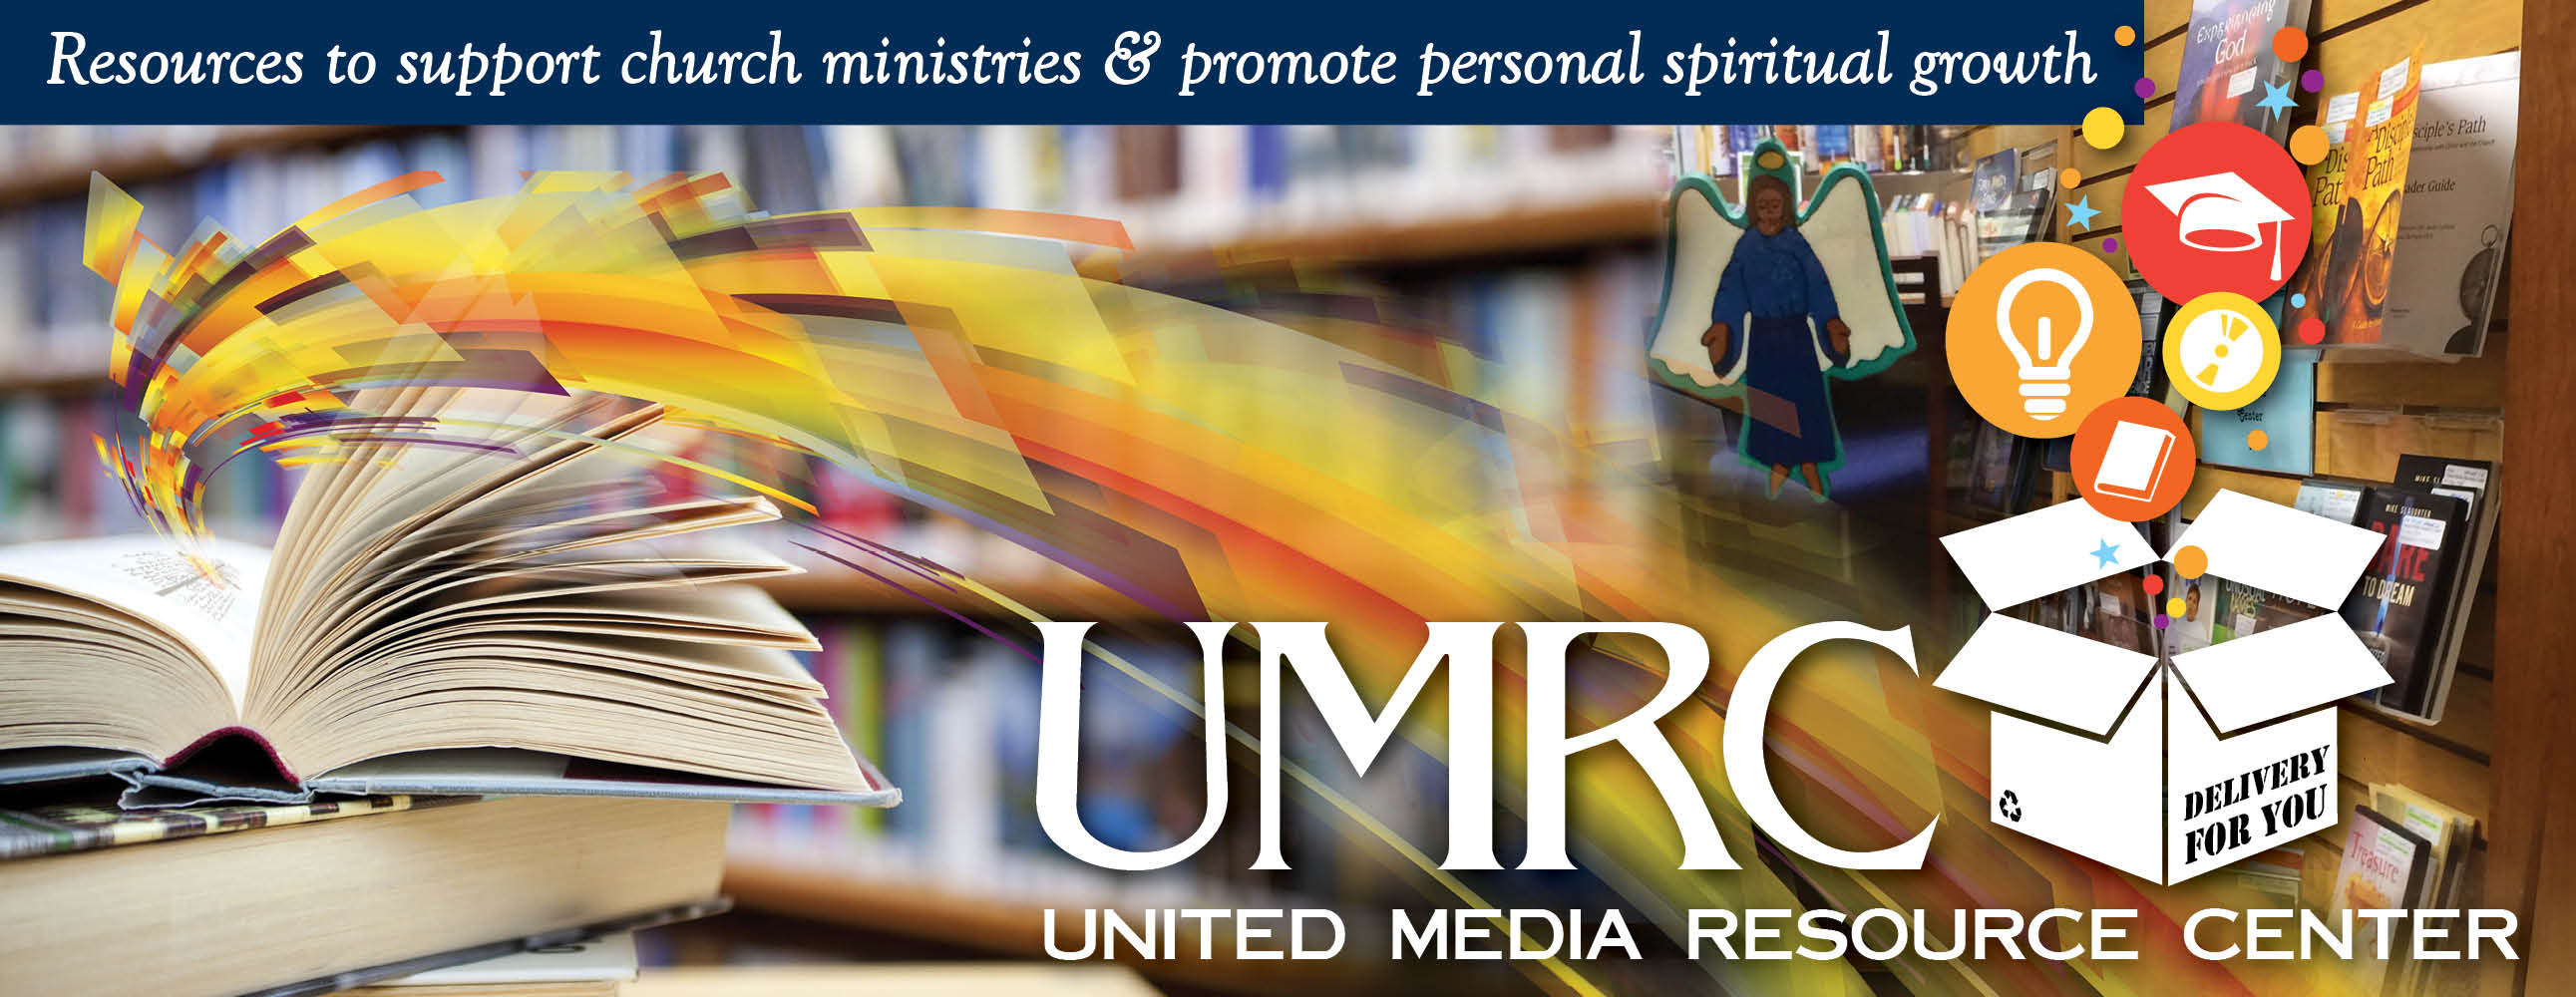 United Media Resource Center banner